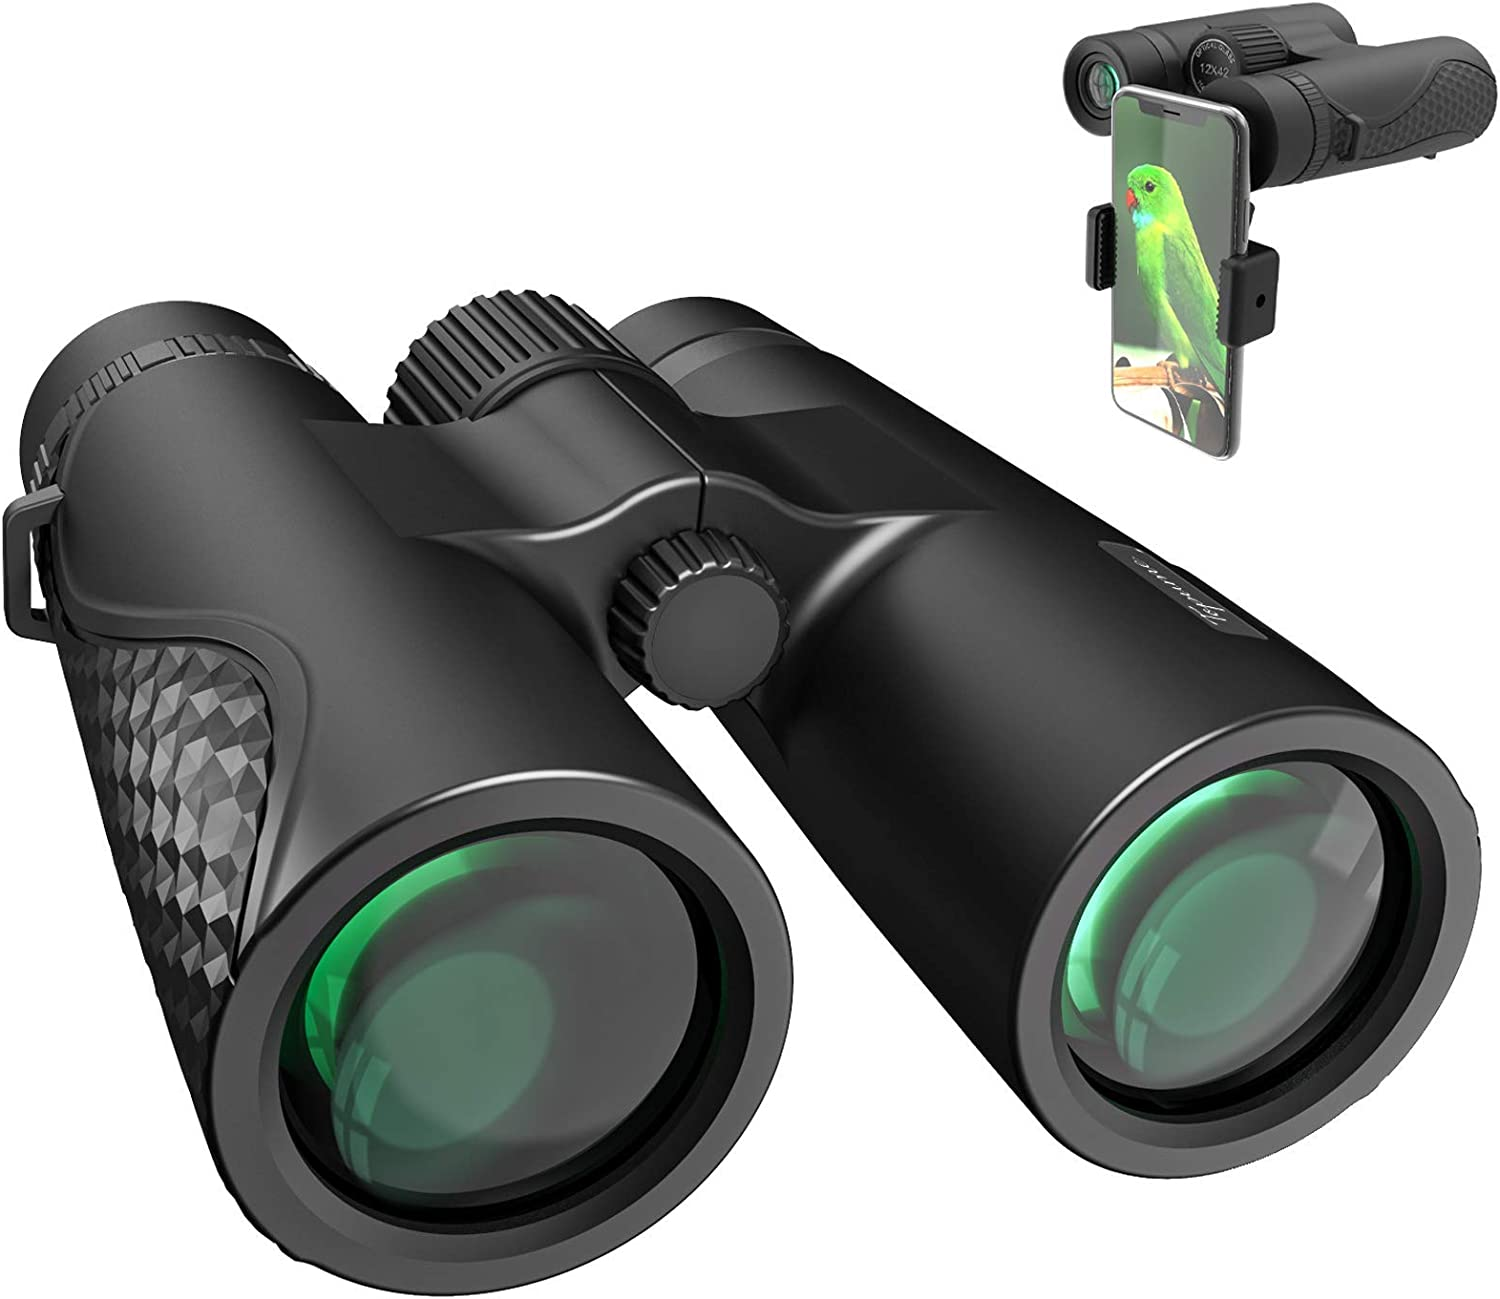 Topume Over item handling 12x42 Binoculars for Max 61% OFF Adults with Ph Smartphone